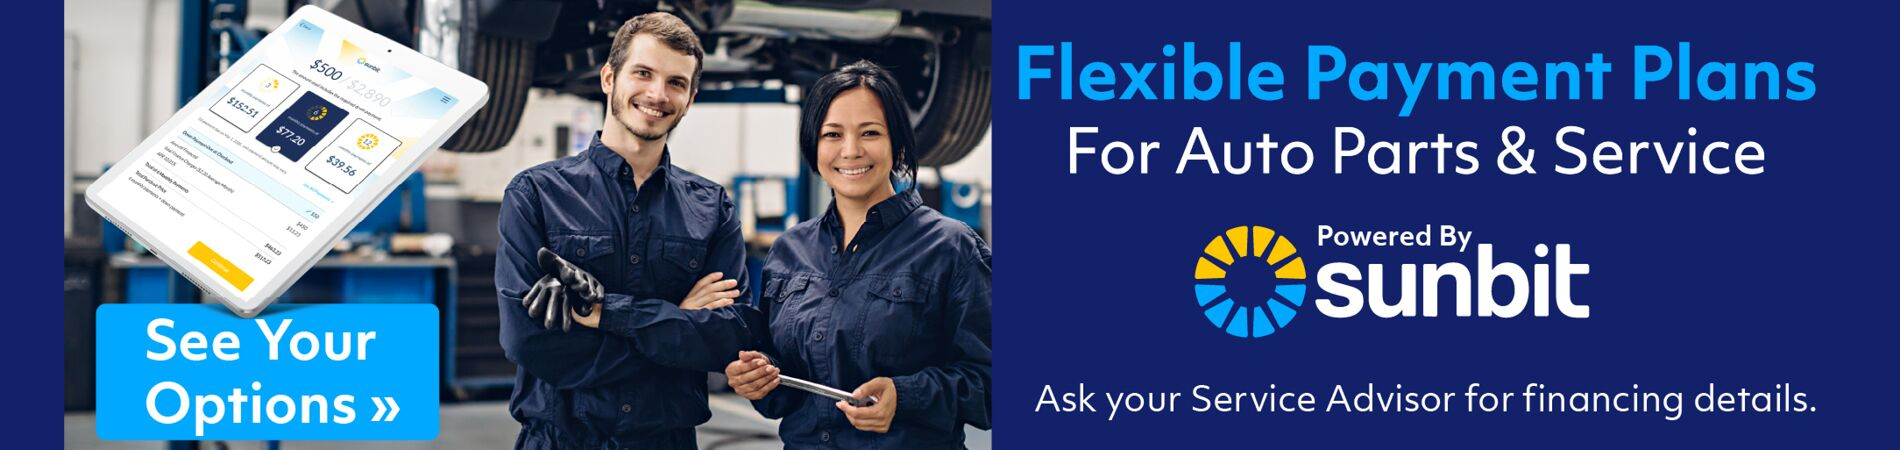 Flexible Payment Plans for Auto Parts & Service